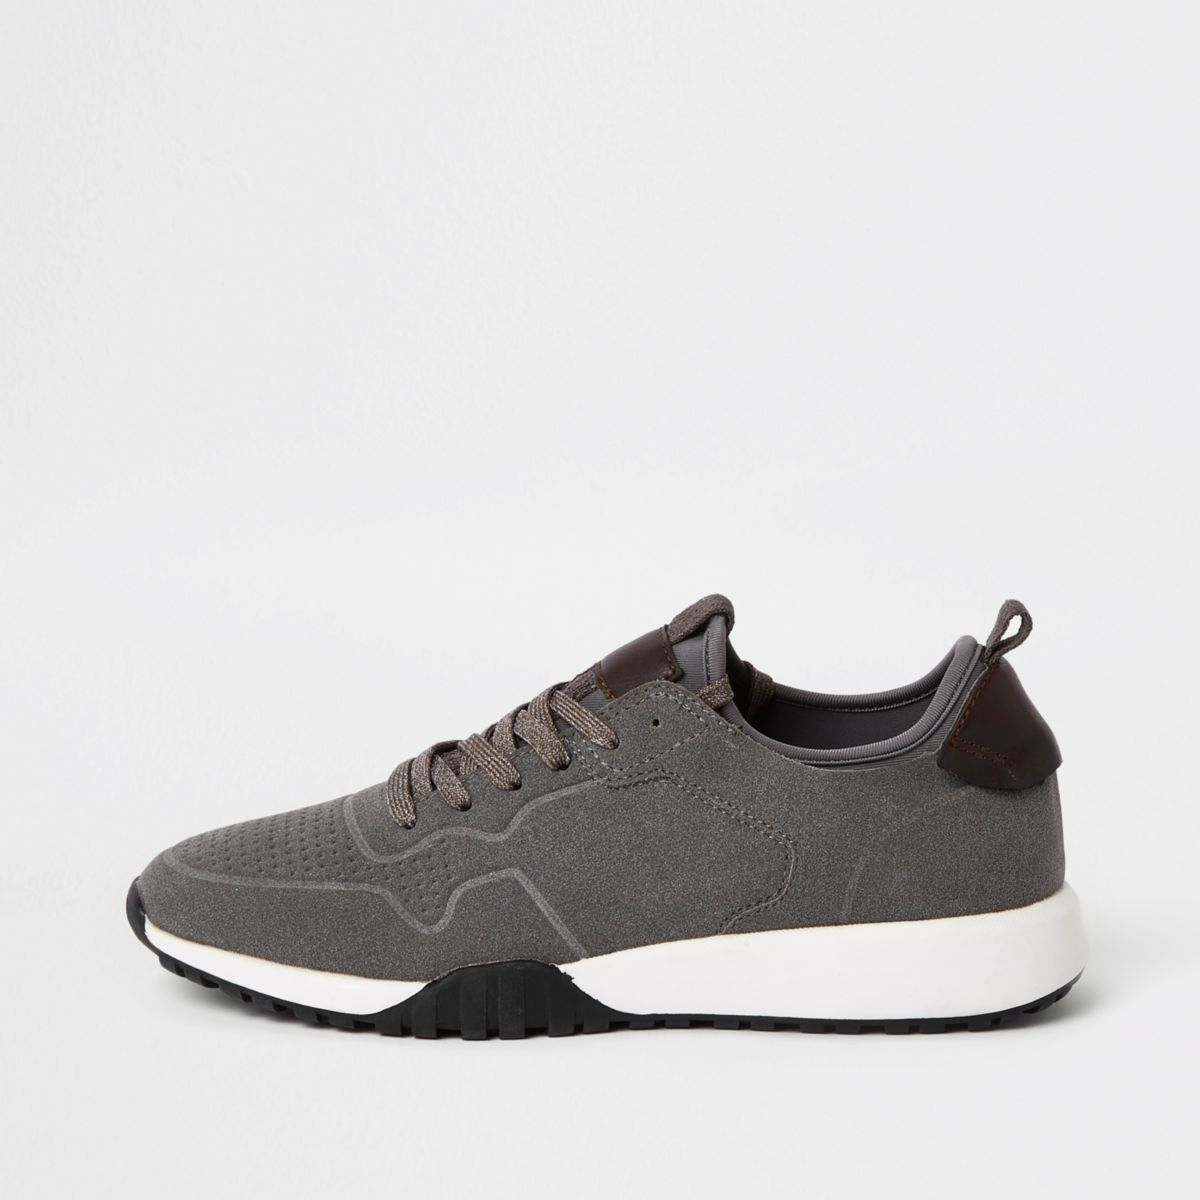 Grey suede runner sneakers